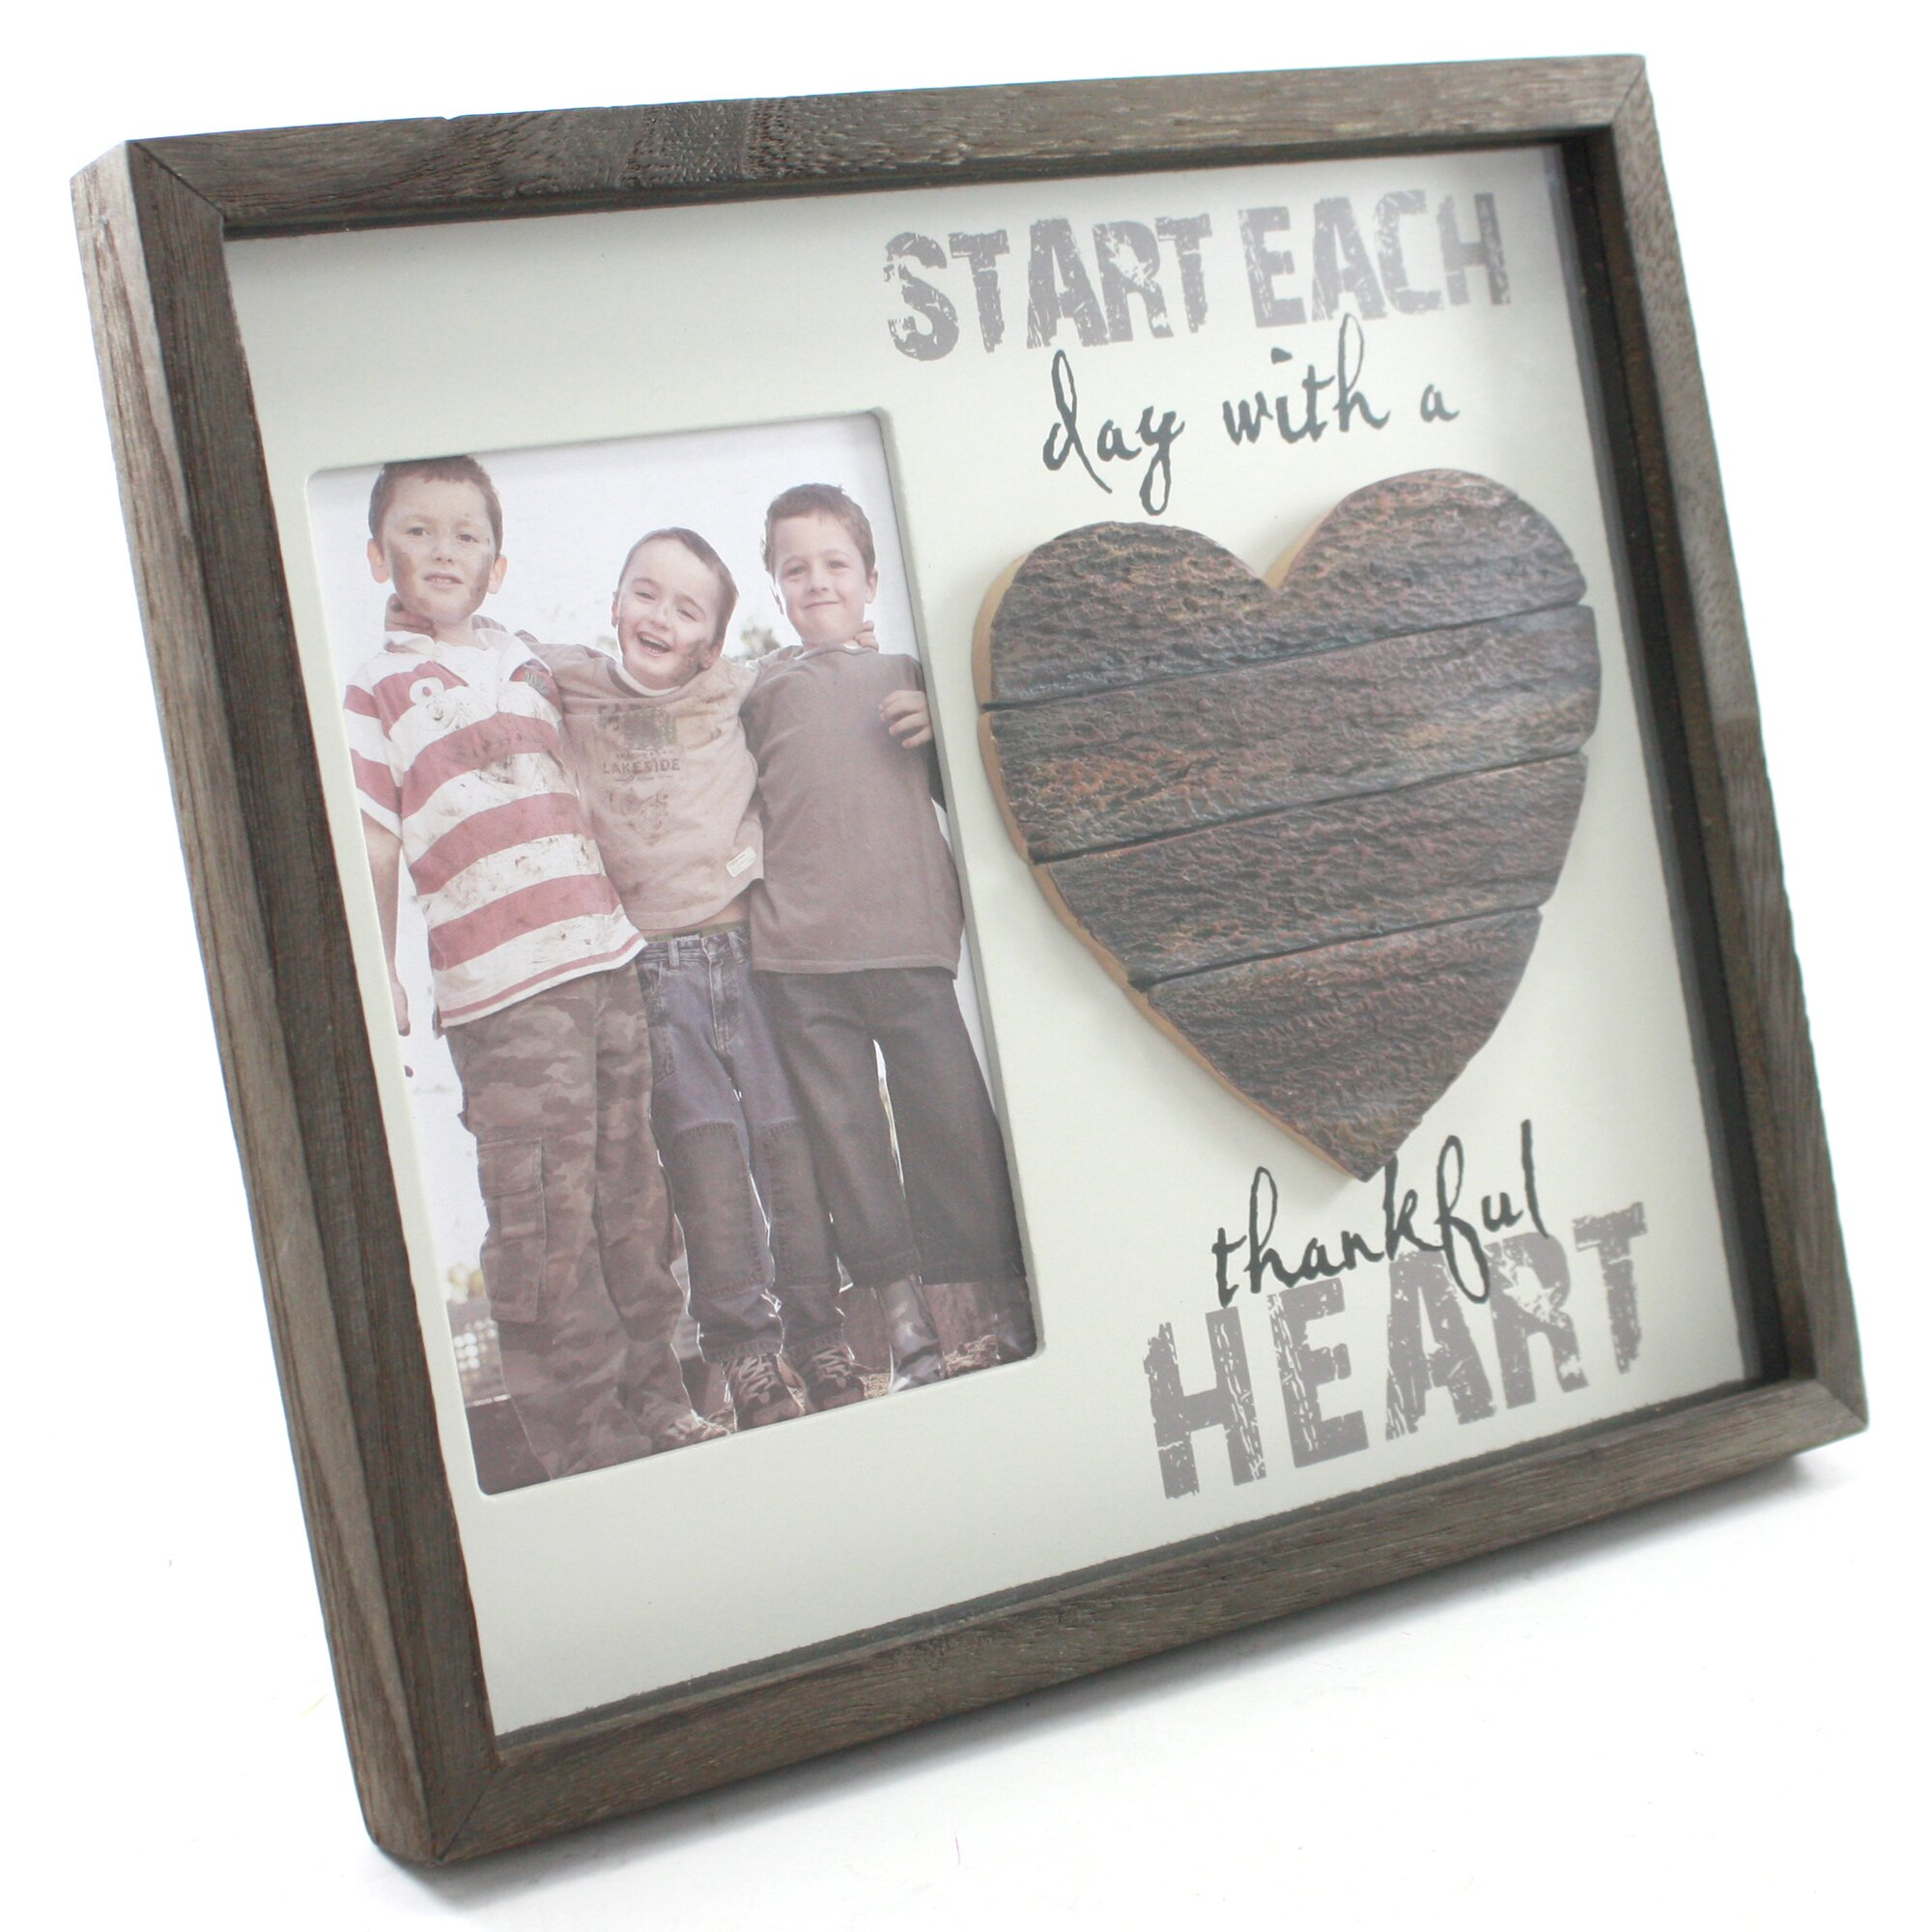 Fetco Home Decor Cleary Thankful Heart Picture Frame